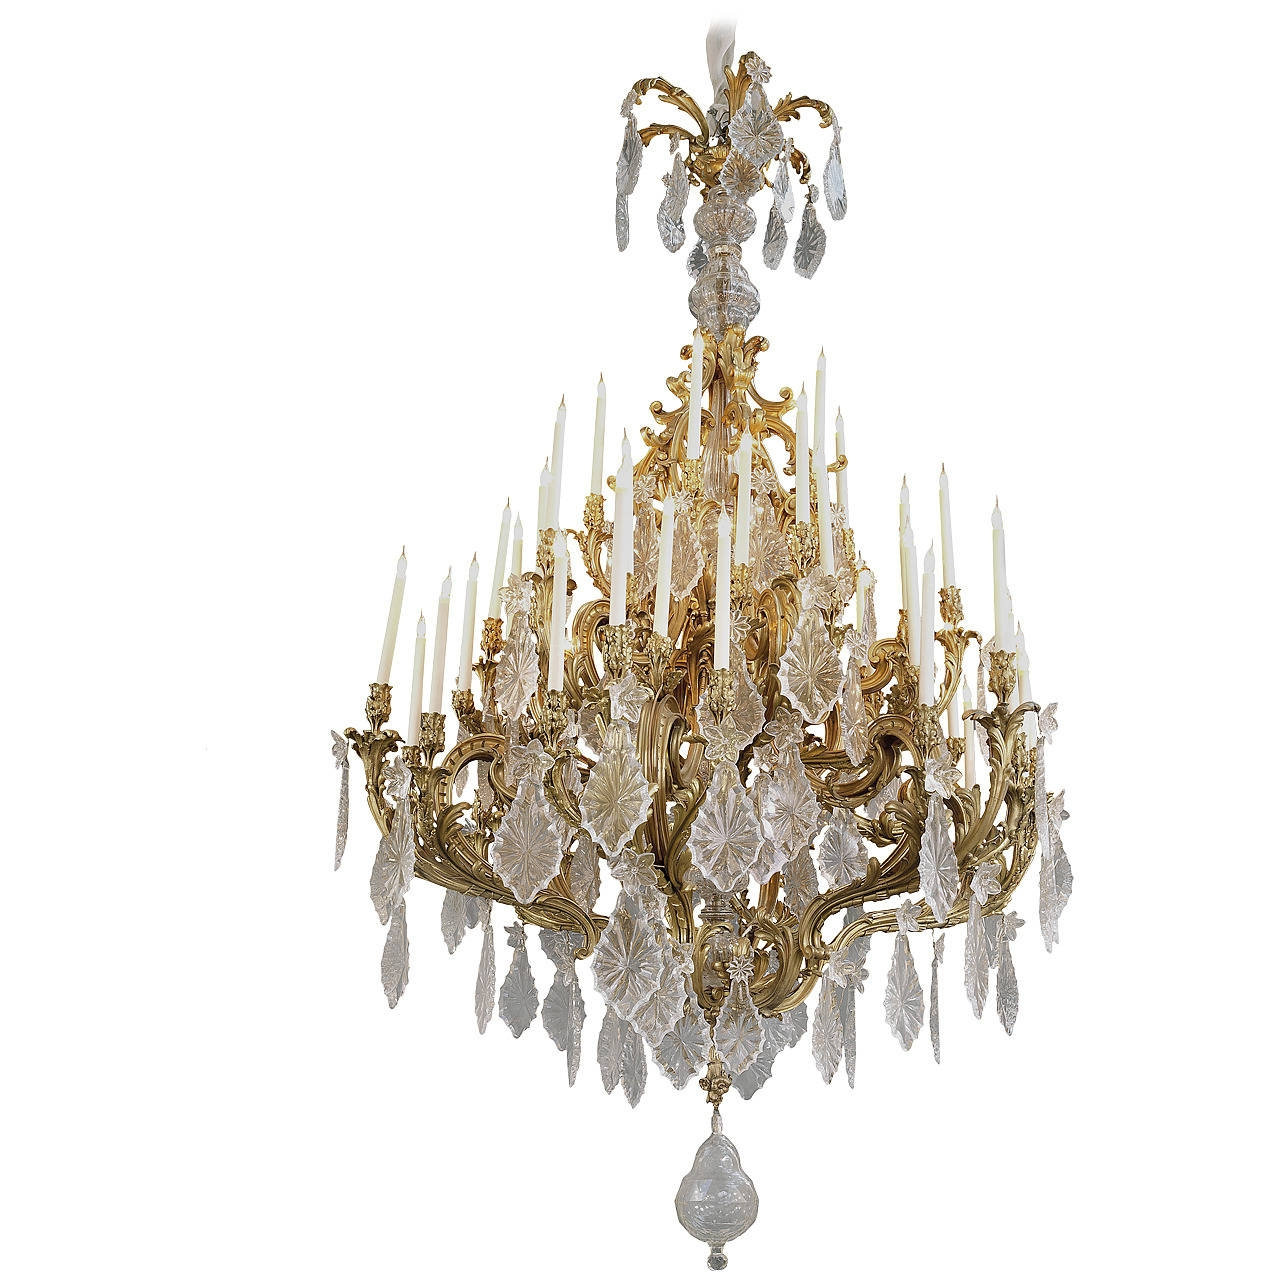 The 12 Most Expensive Lamps In The World Within Expensive Crystal Chandeliers (Image 12 of 15)